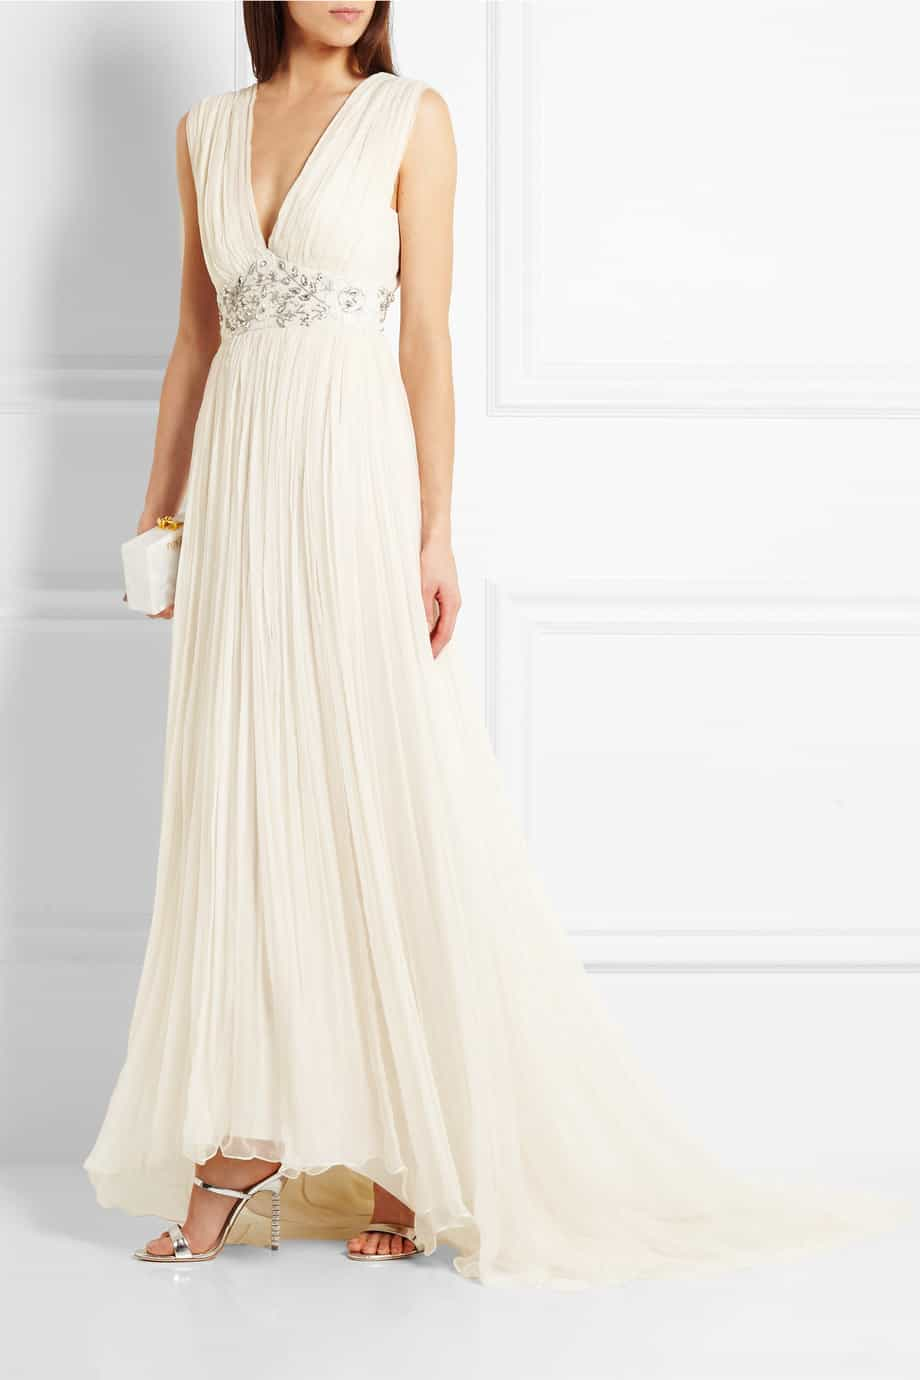 NEEDLE & THREAD Embellished chiffon gown from net a porter